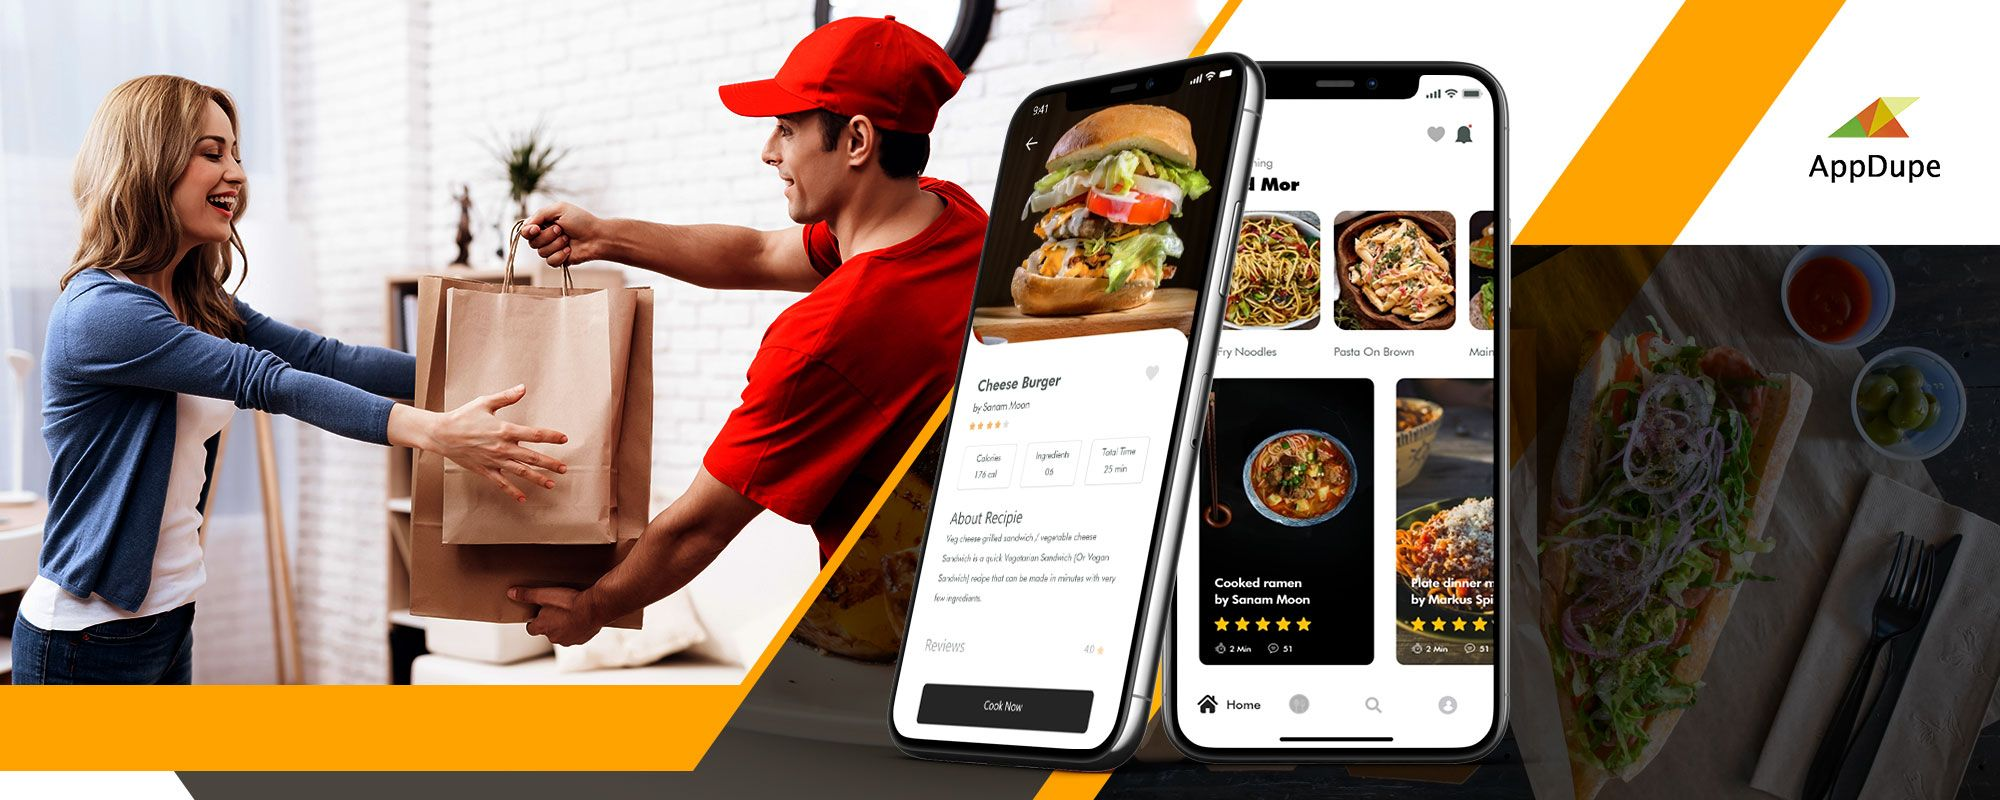 Develop a Food Delivery App like UberEats with Blockchain Technology